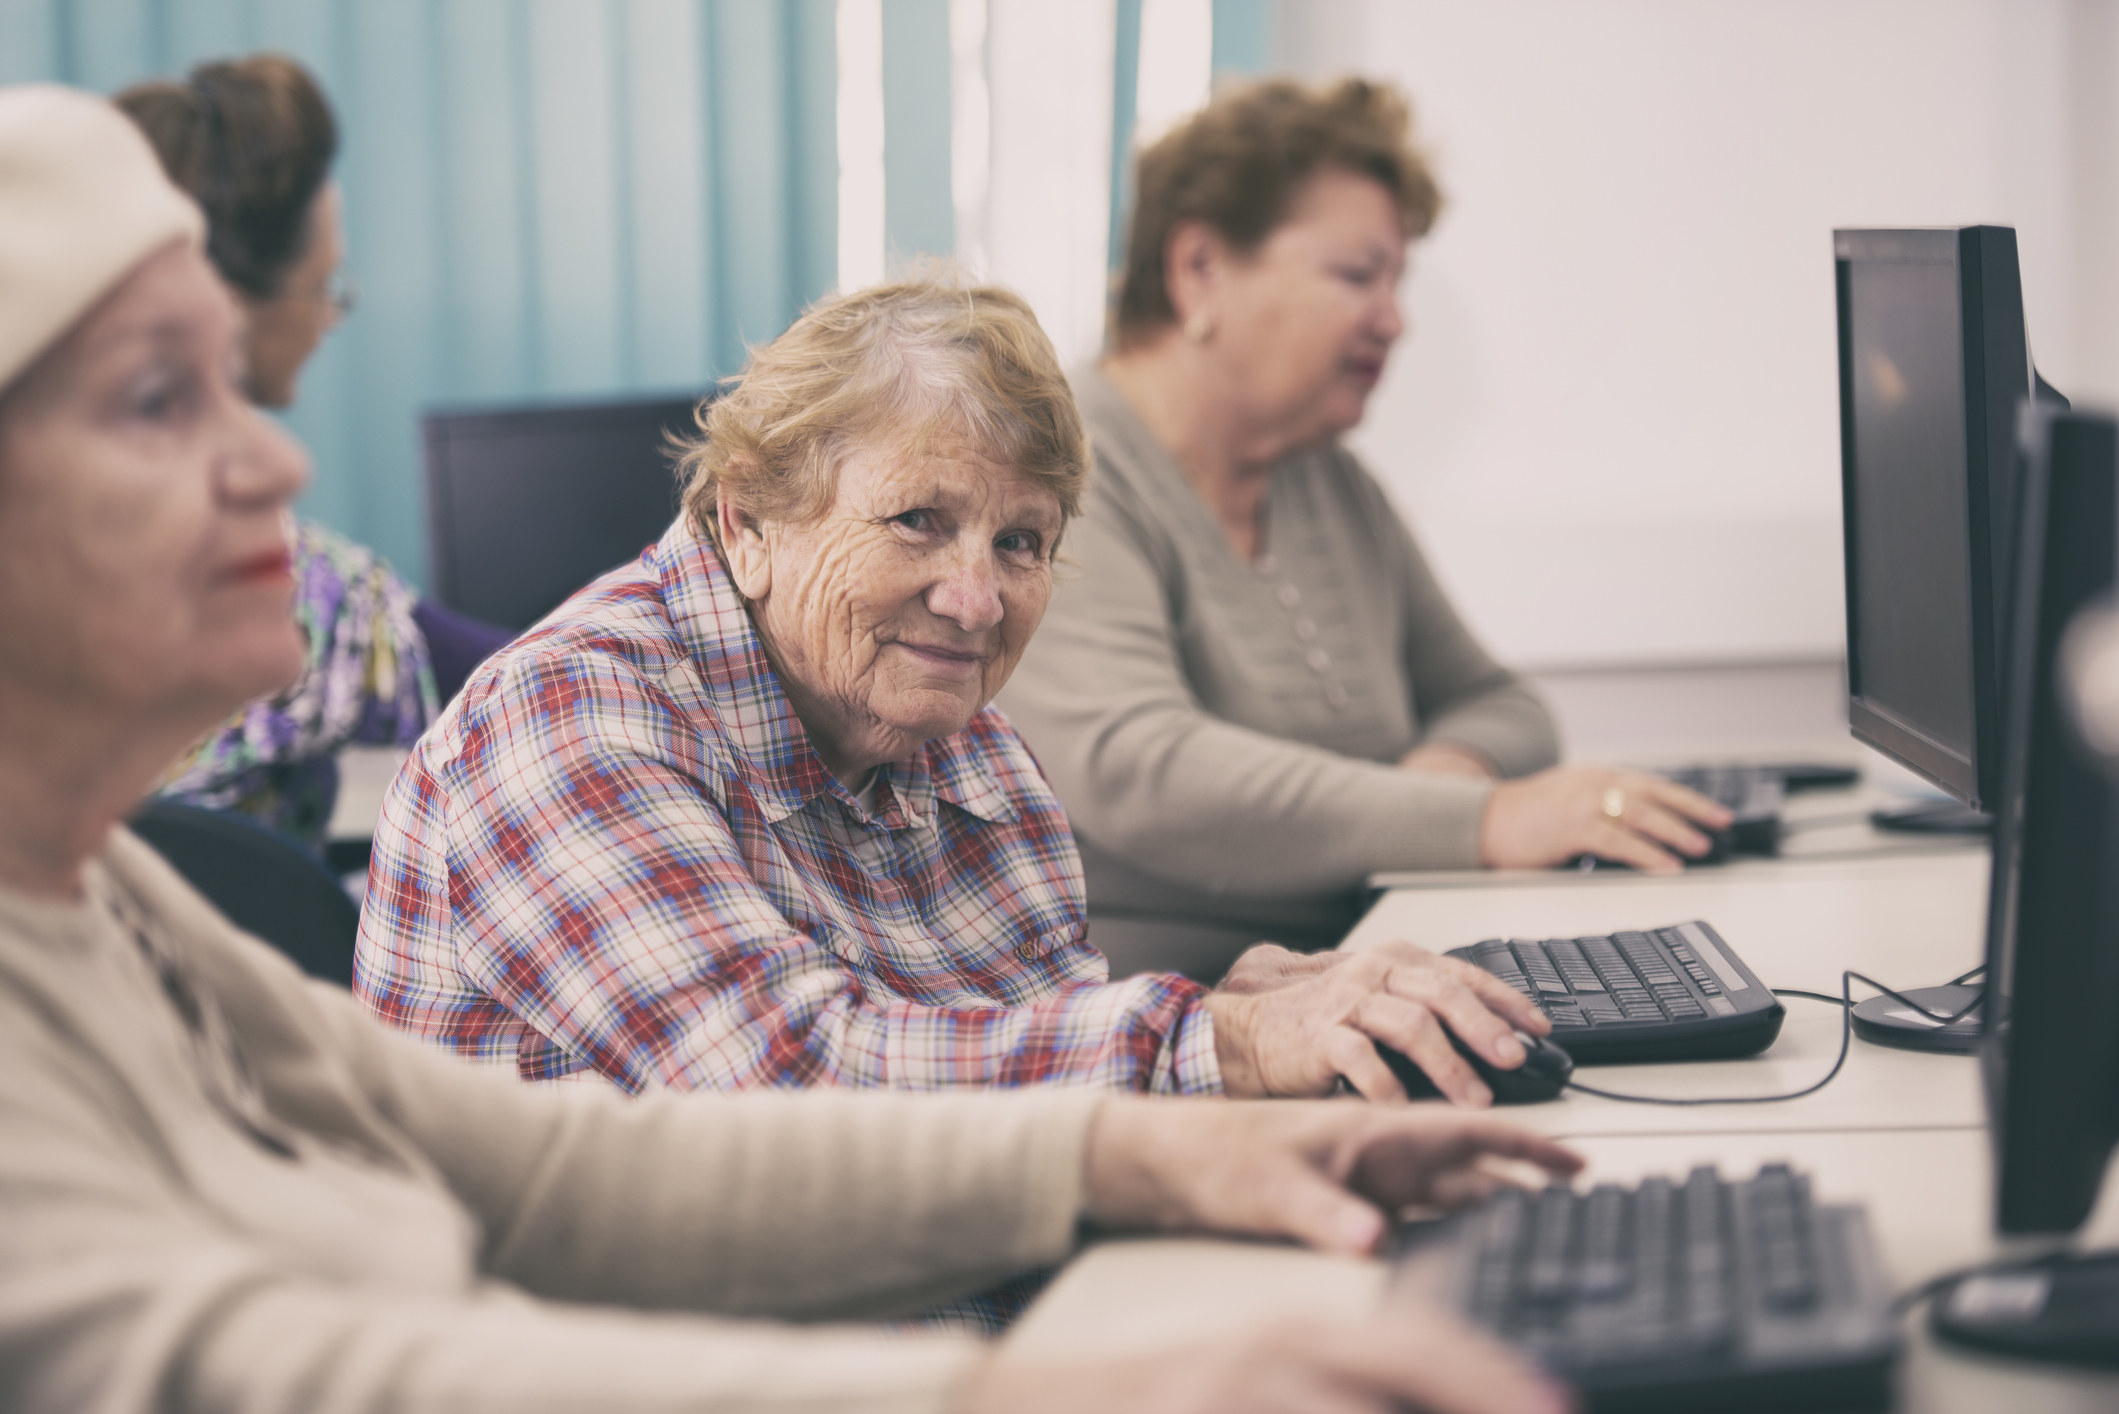 old lady at a computer smiling